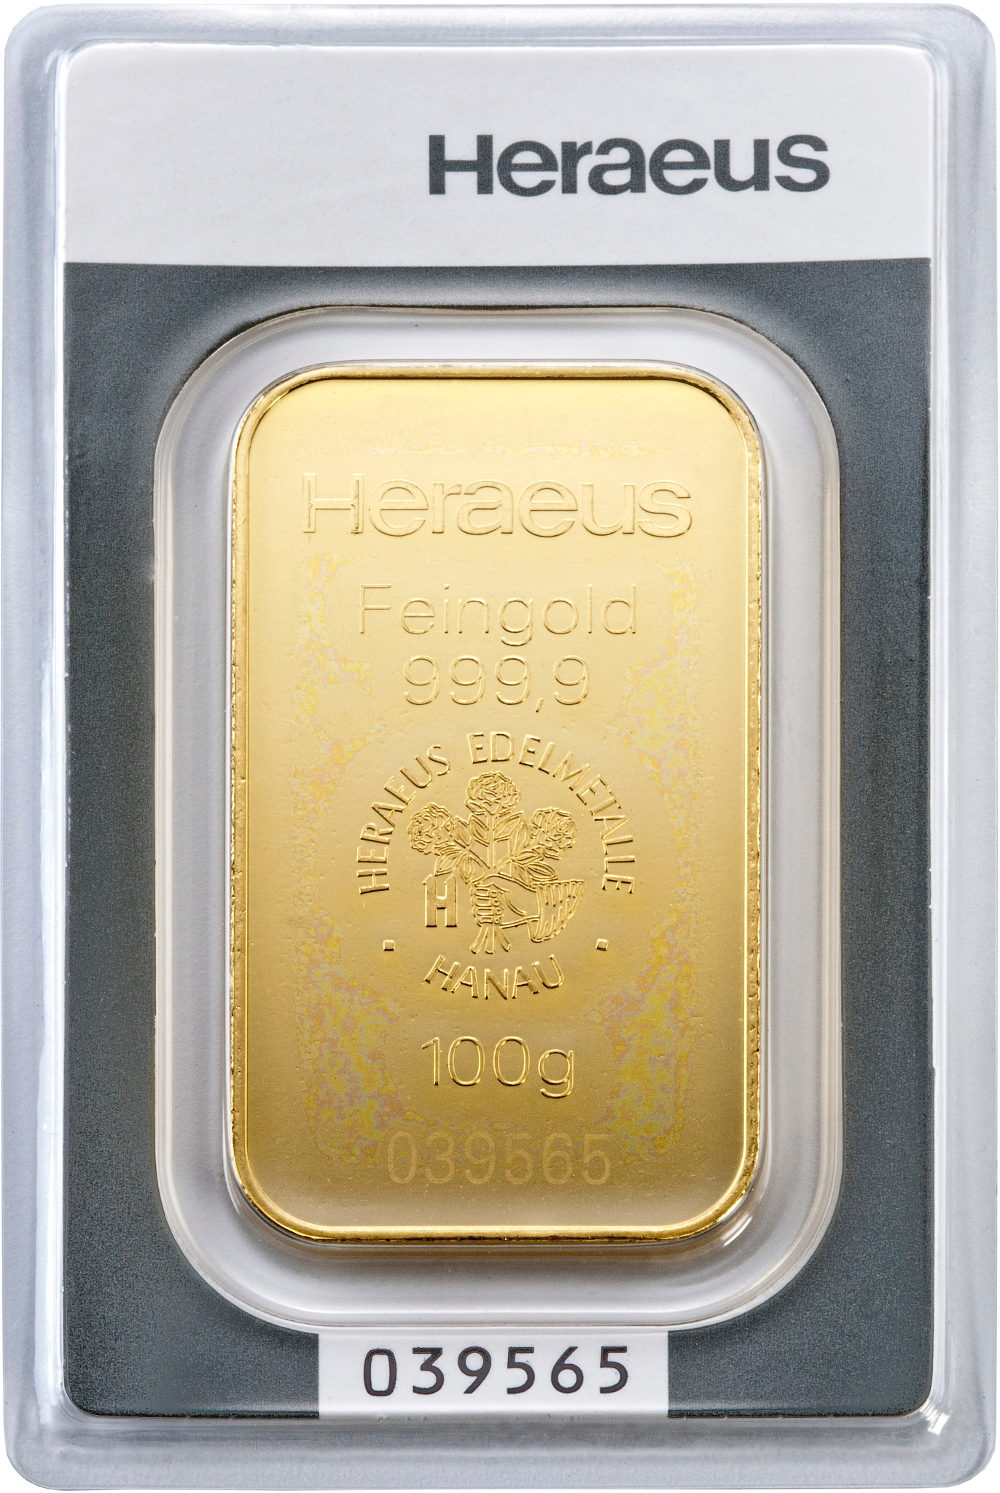 100g Heraeus Gold Bullion Bars Bullionbypost From 163 2 538